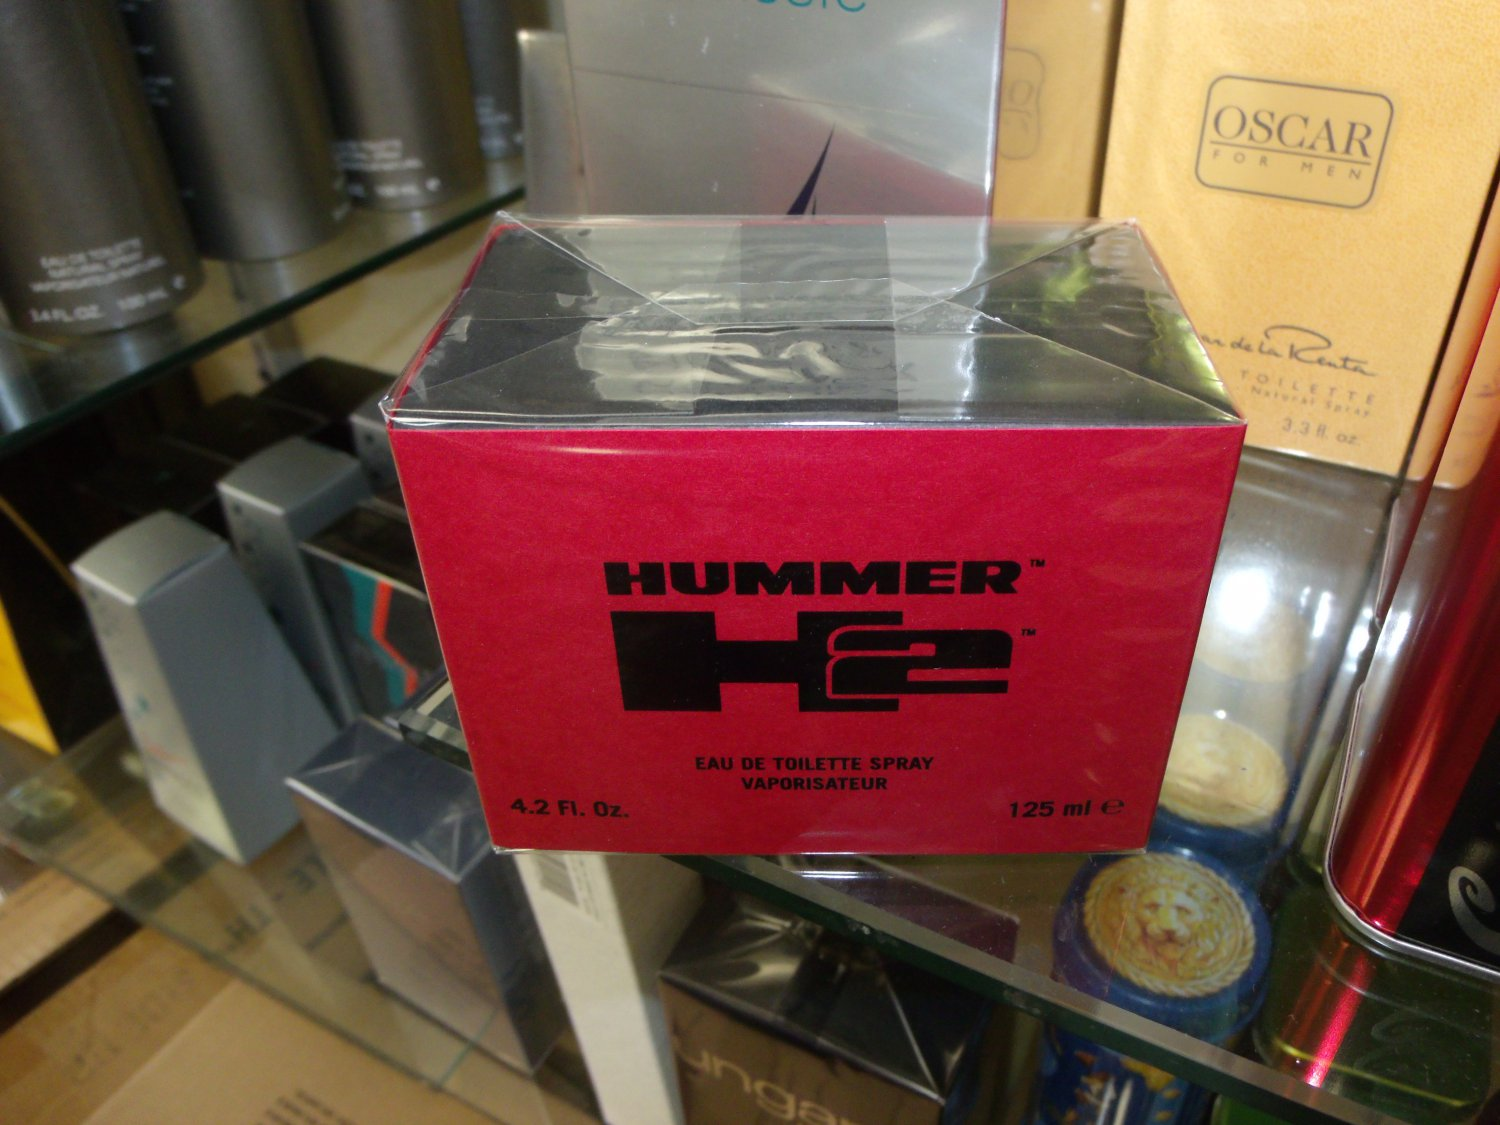 Hummer H2 by hummer 4.2 Fl.Oz EDT 125 ml for men Retail $ 54.00 Our Price $ 34.99 Save 35 %